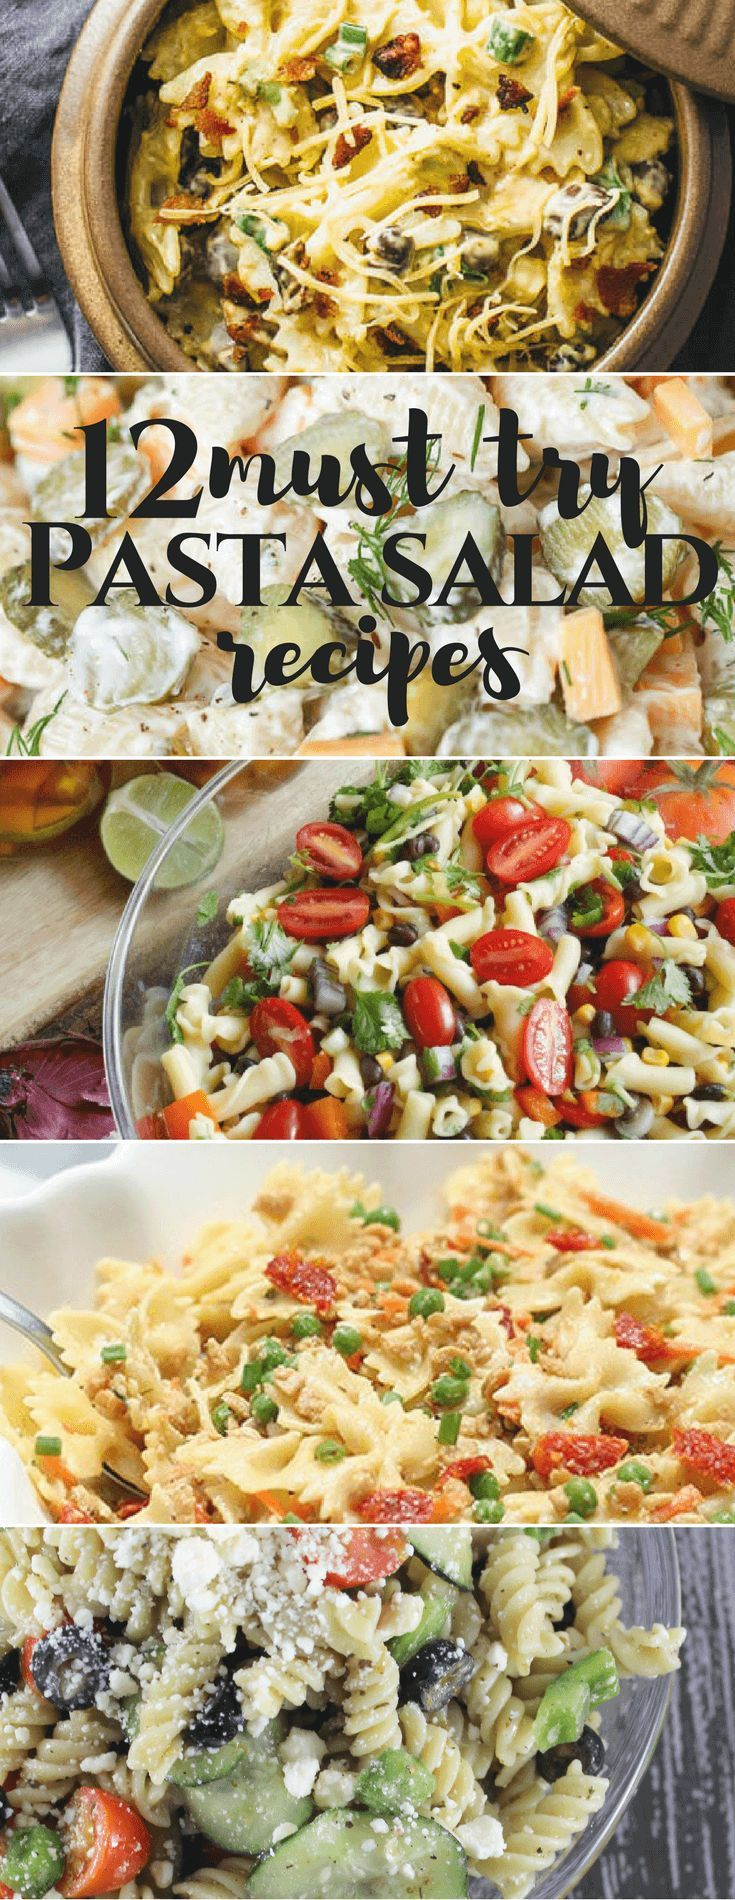 12 Must Try Pasta Salad Recipes cooking from scratch